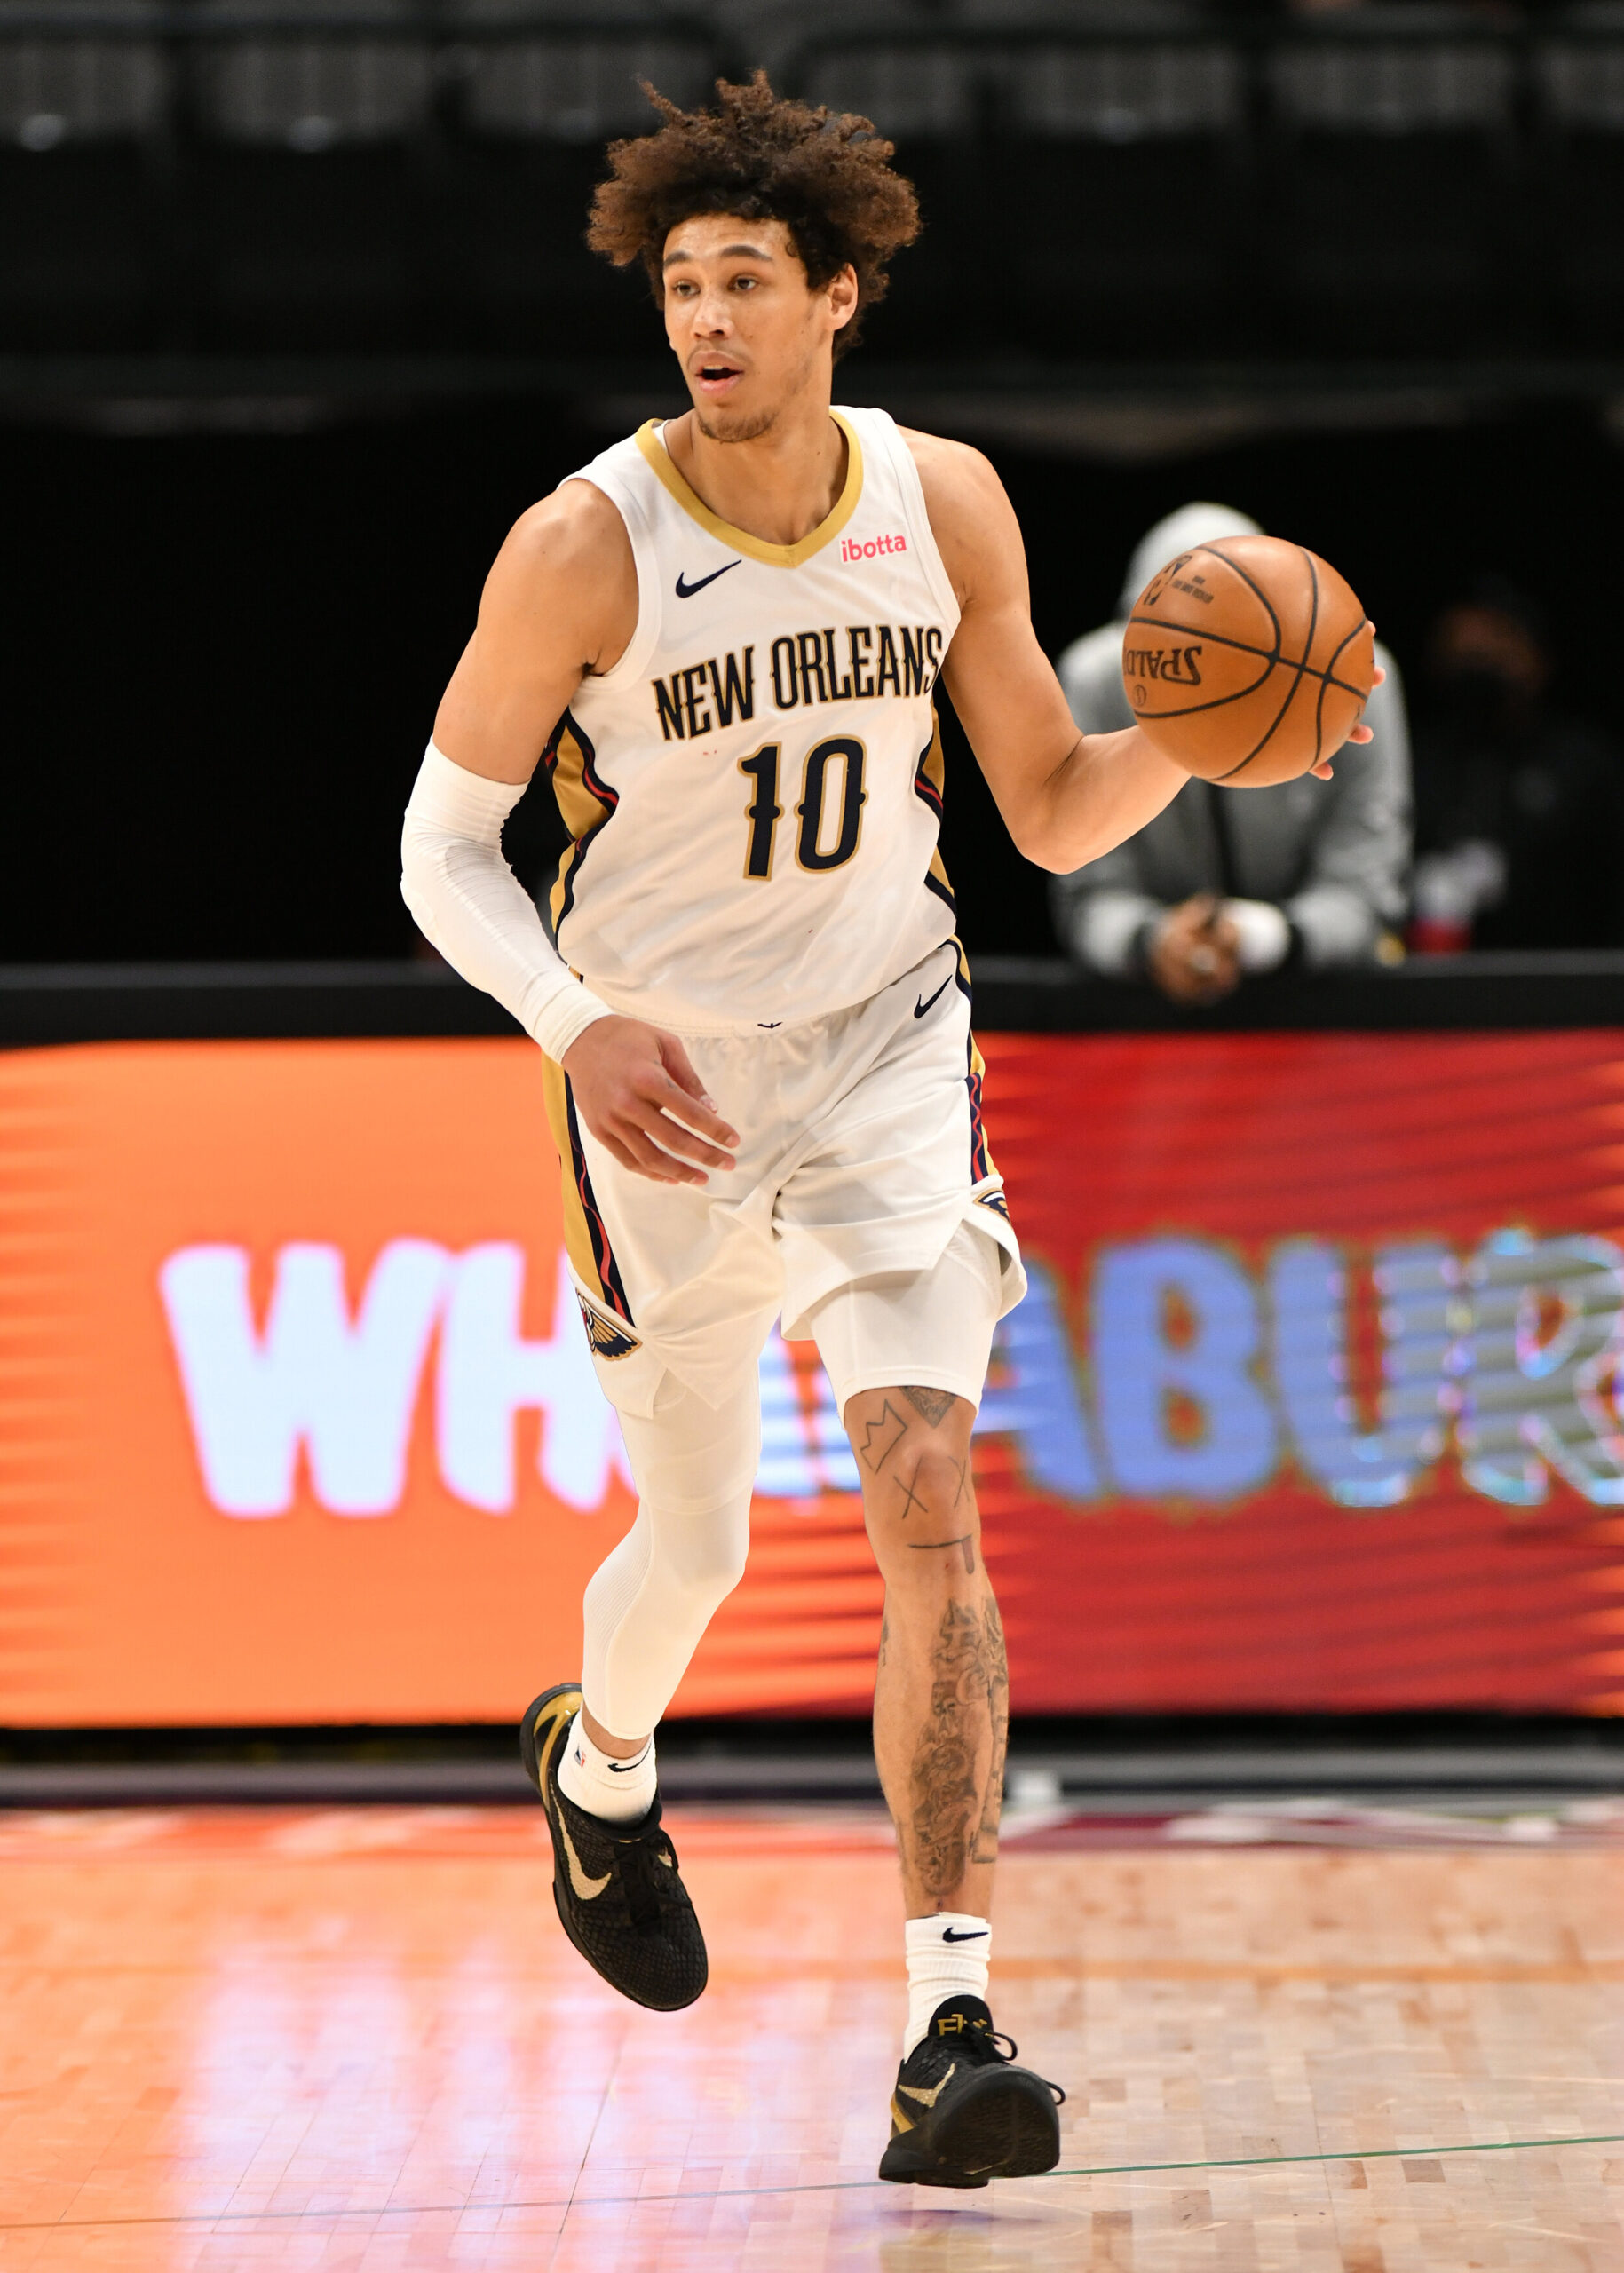 <i>Glenn James/NBAE/Getty Images/FILE</i><br/>The Los Angeles Police Department has launched an investigation into whether officers used excessive force while arresting NBA Pelicans center Jaxson Hayes